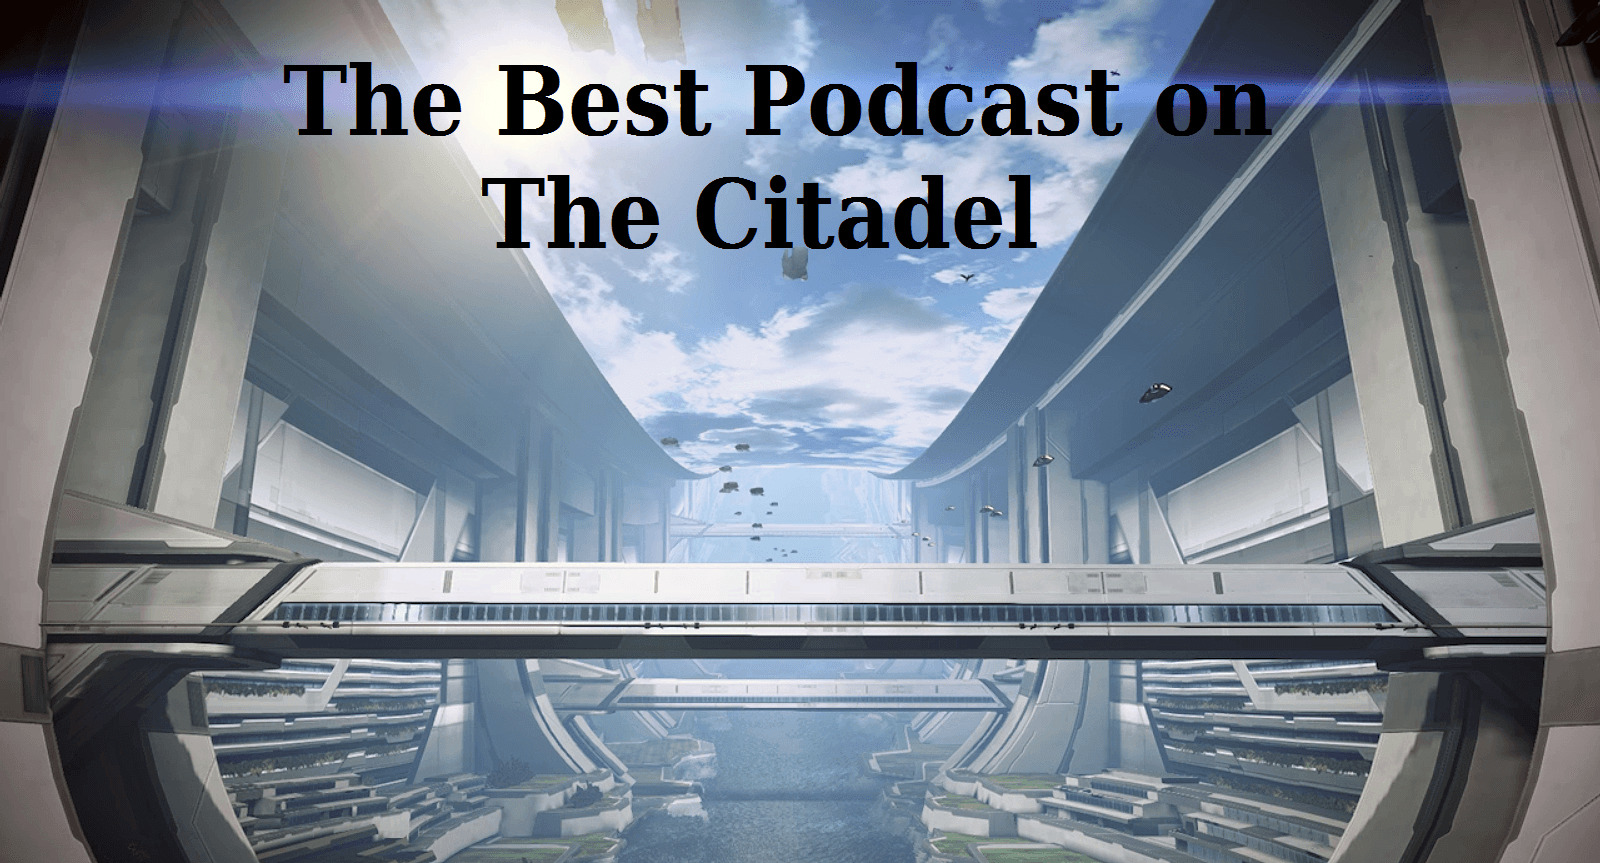 The Best Podcast on the Citadel, Episode 23